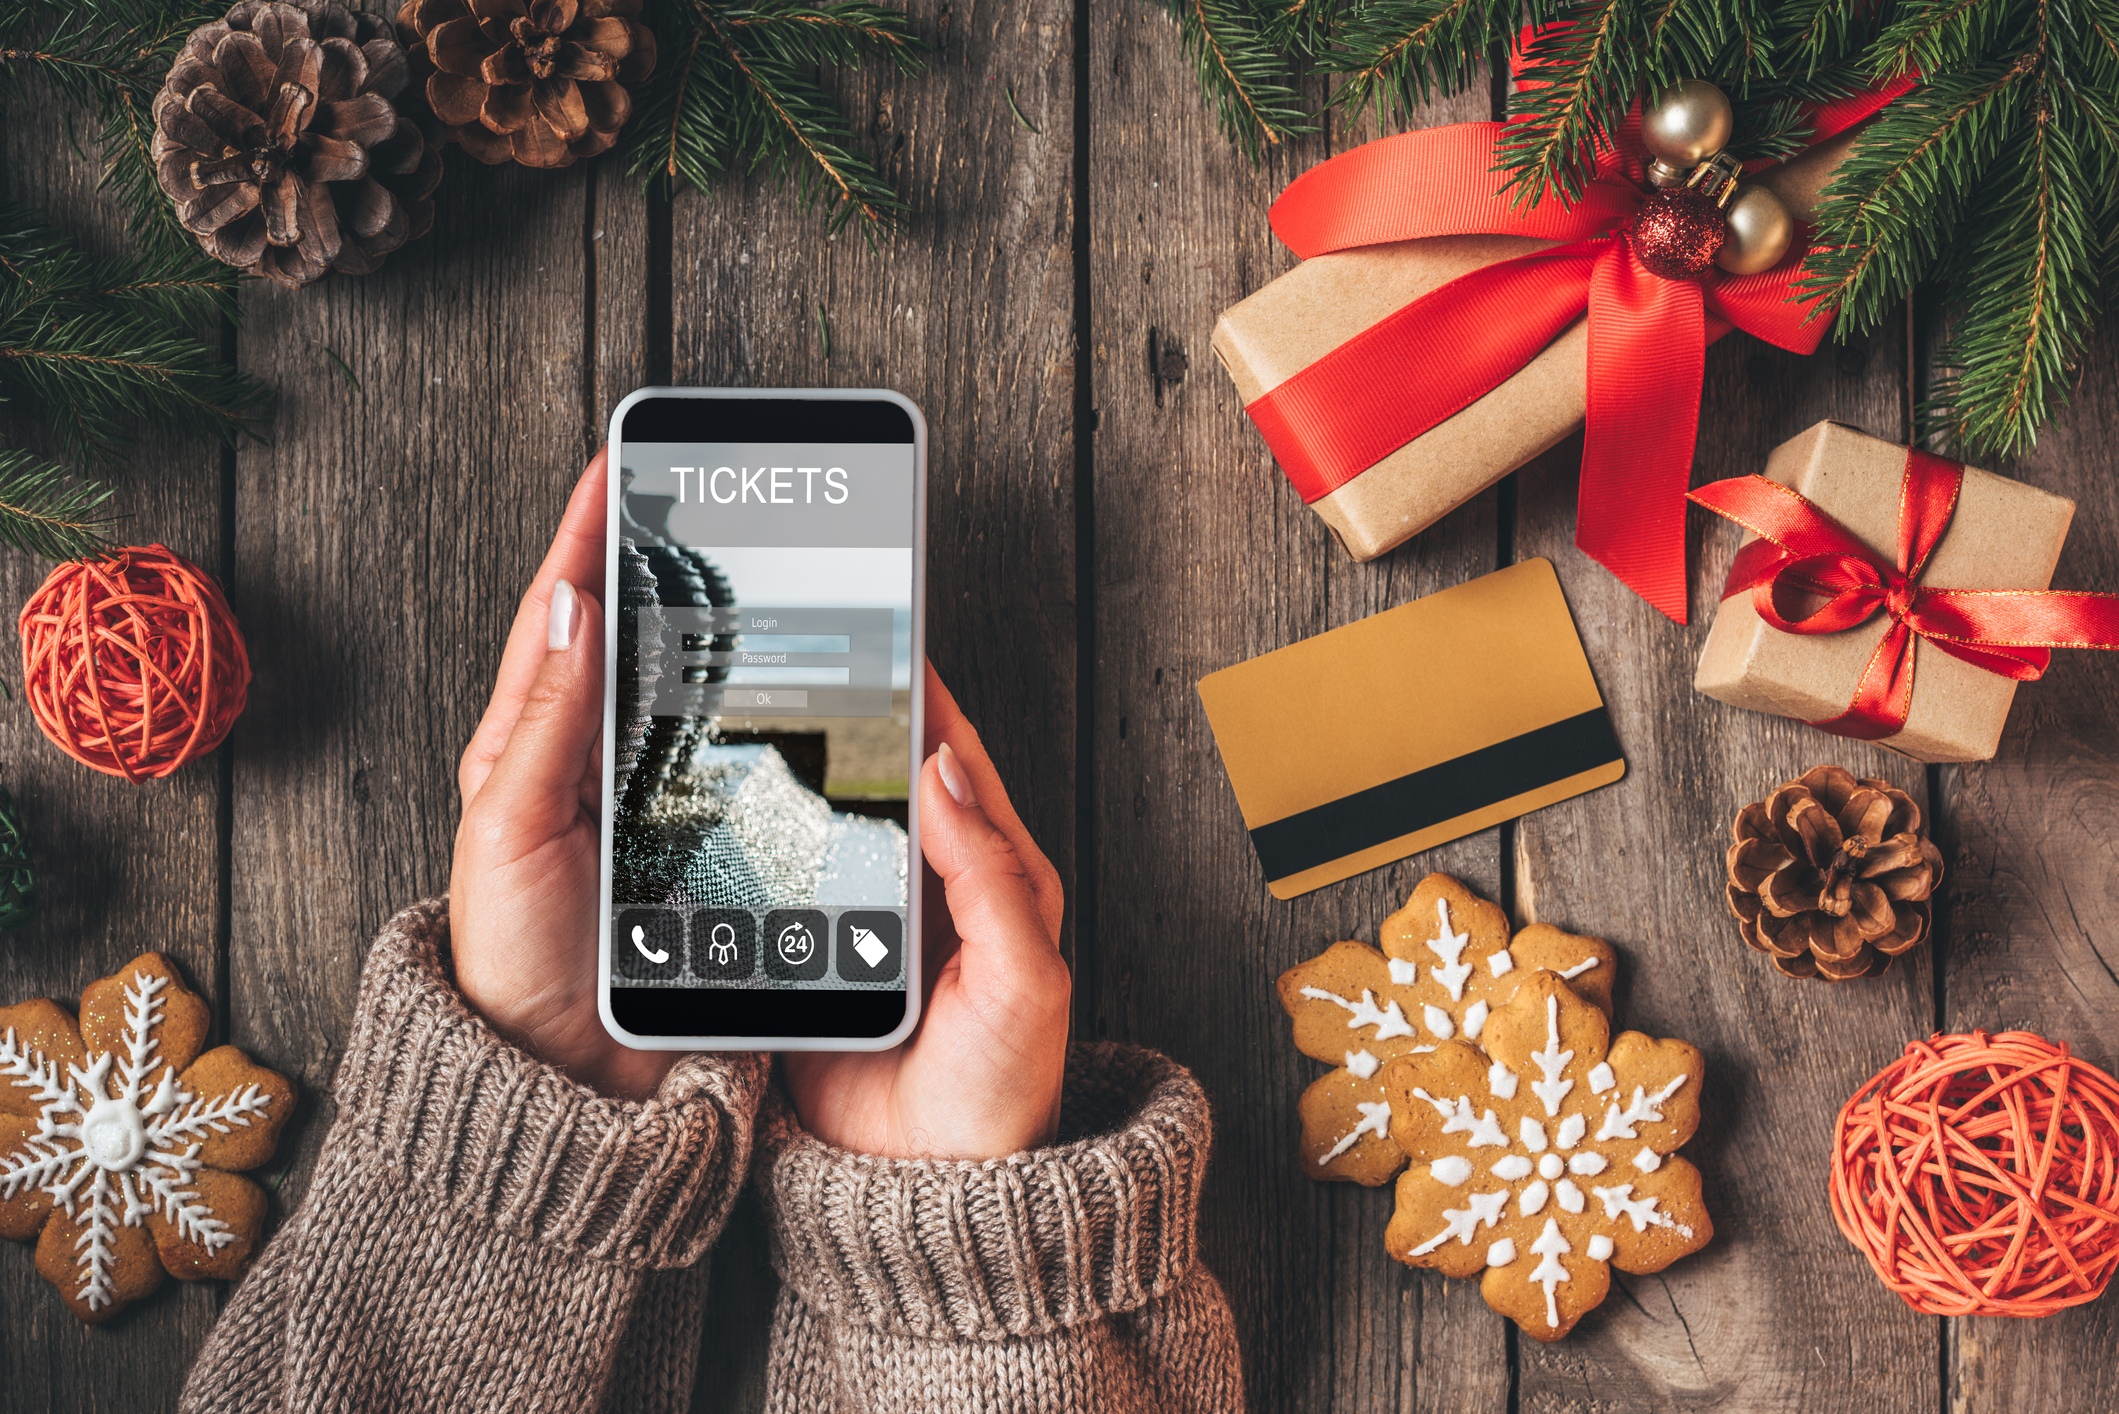 Christmas decor and a credit card on a table around hands holding a phone showing a ticket purchase screen.